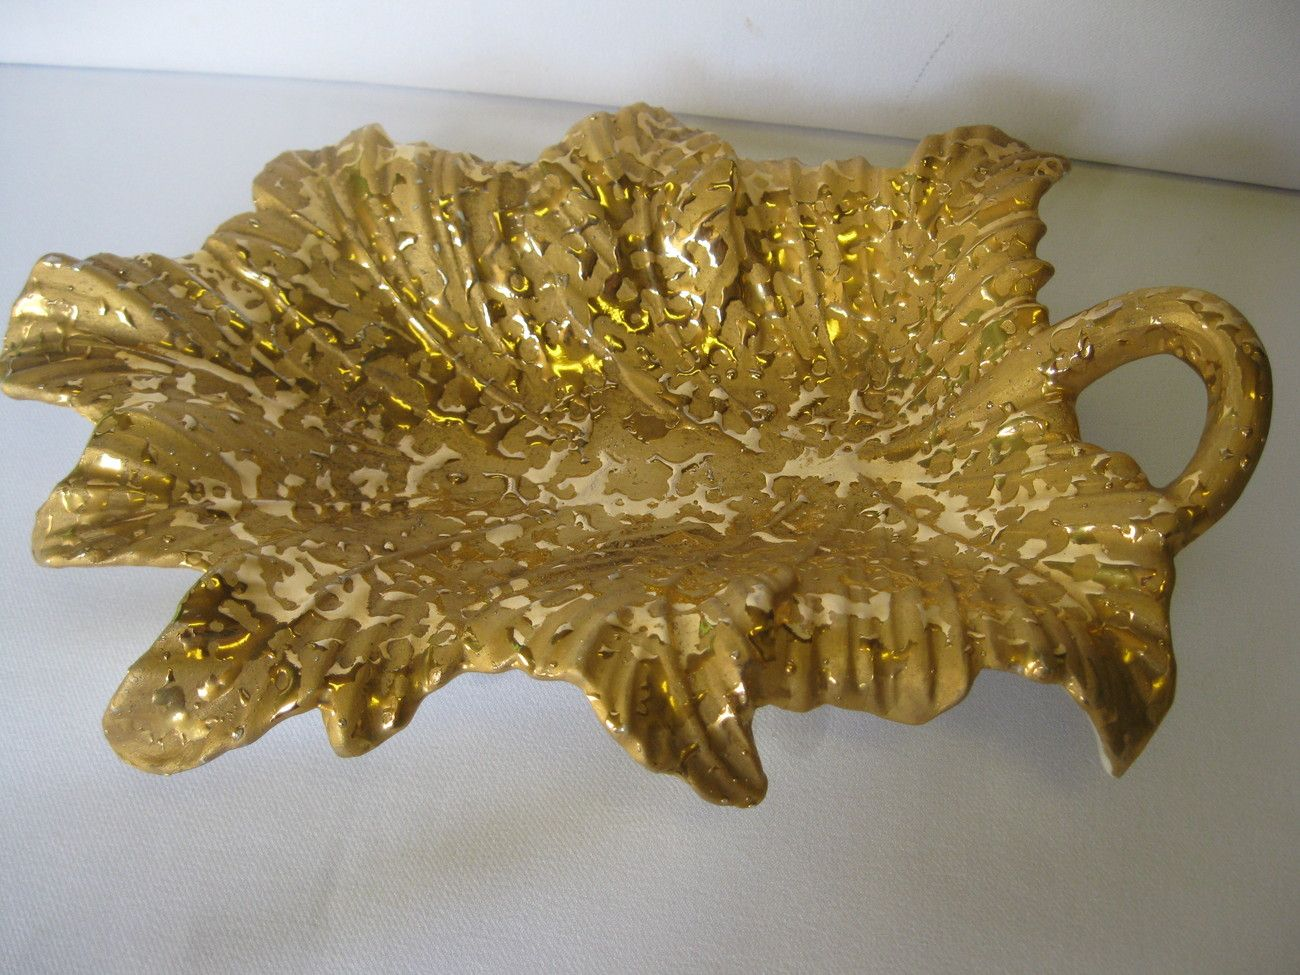 84fb96c9f58a Ceramic Weeping Bright Gold Hand Decorated 22K Gold Leaf Candy Dish Made in  USA  teamsellit